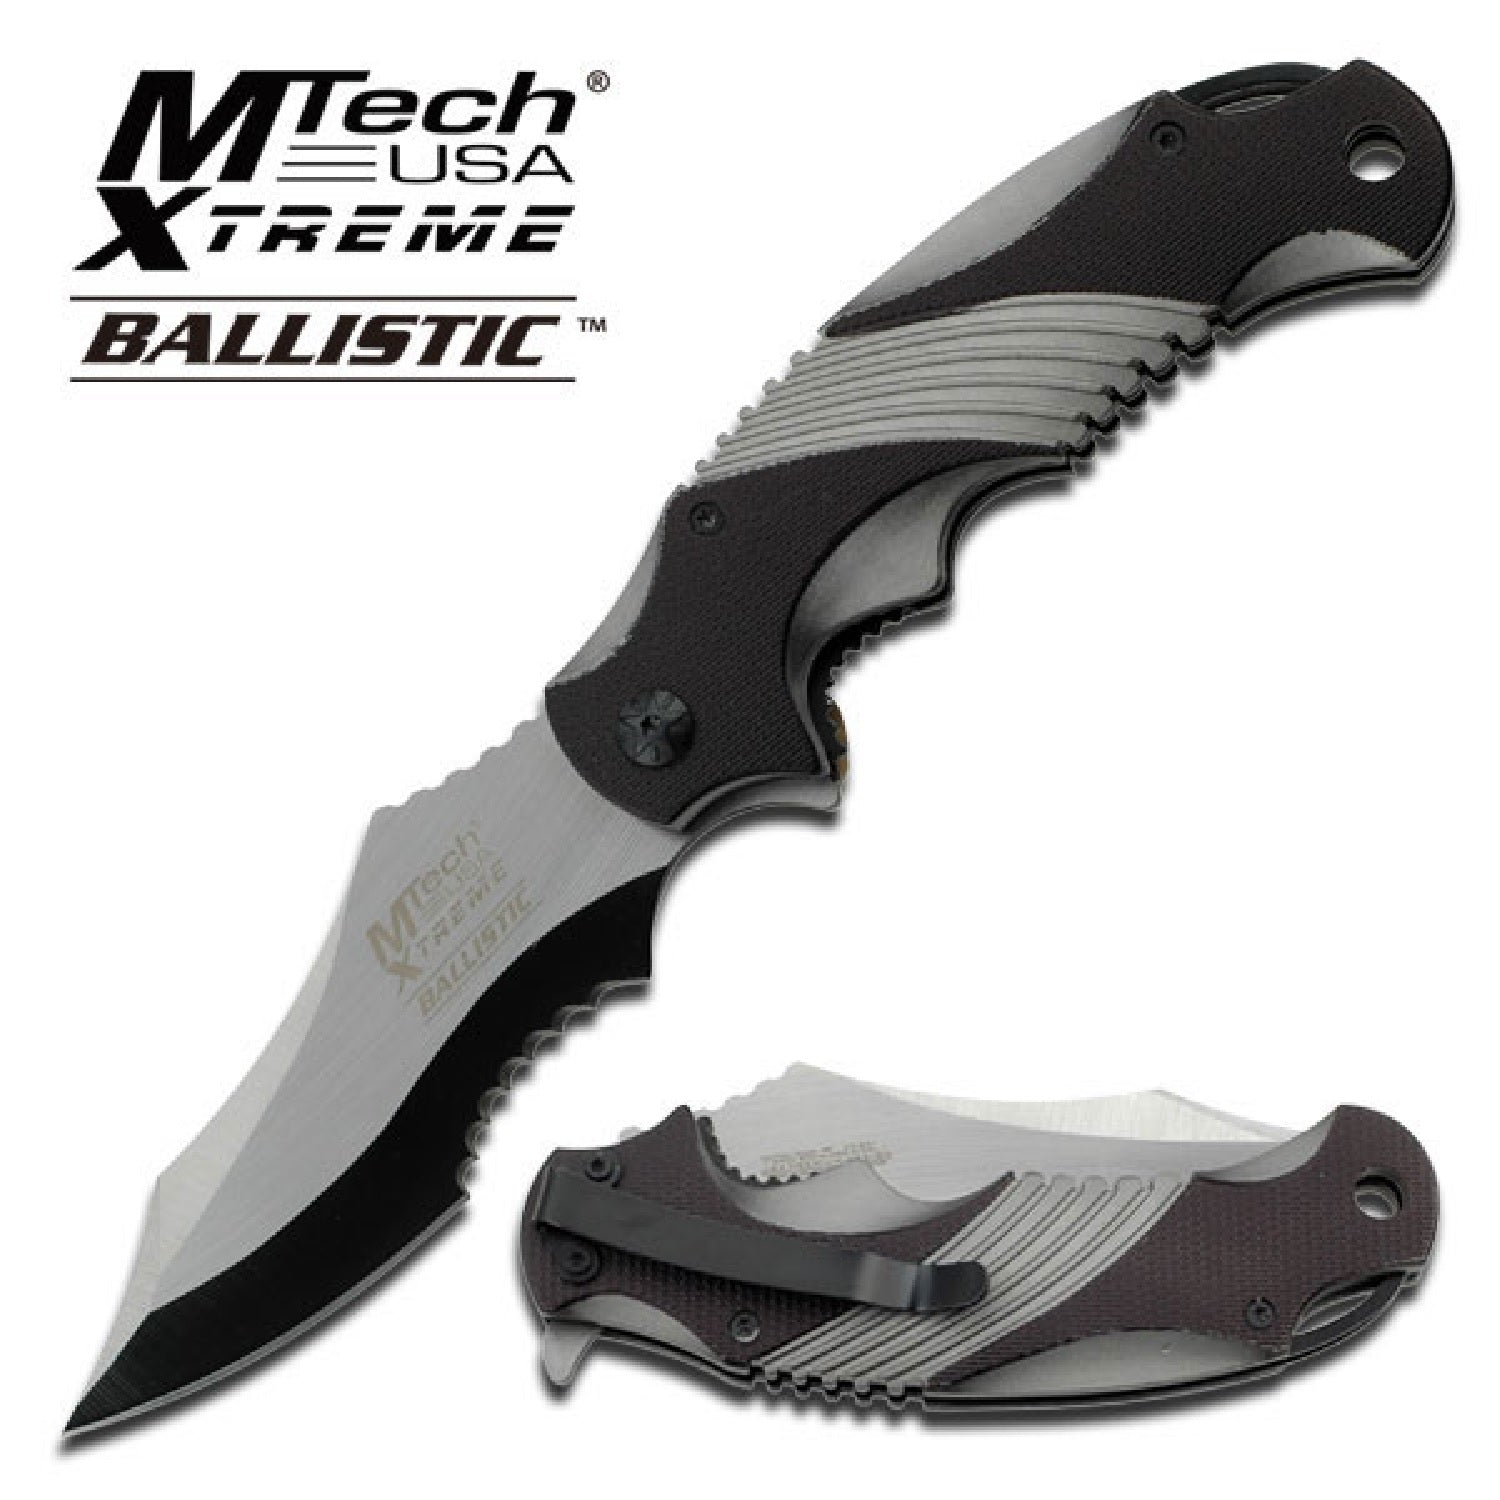 MTech Assisted 3.5 in Blade Aluminum Handle